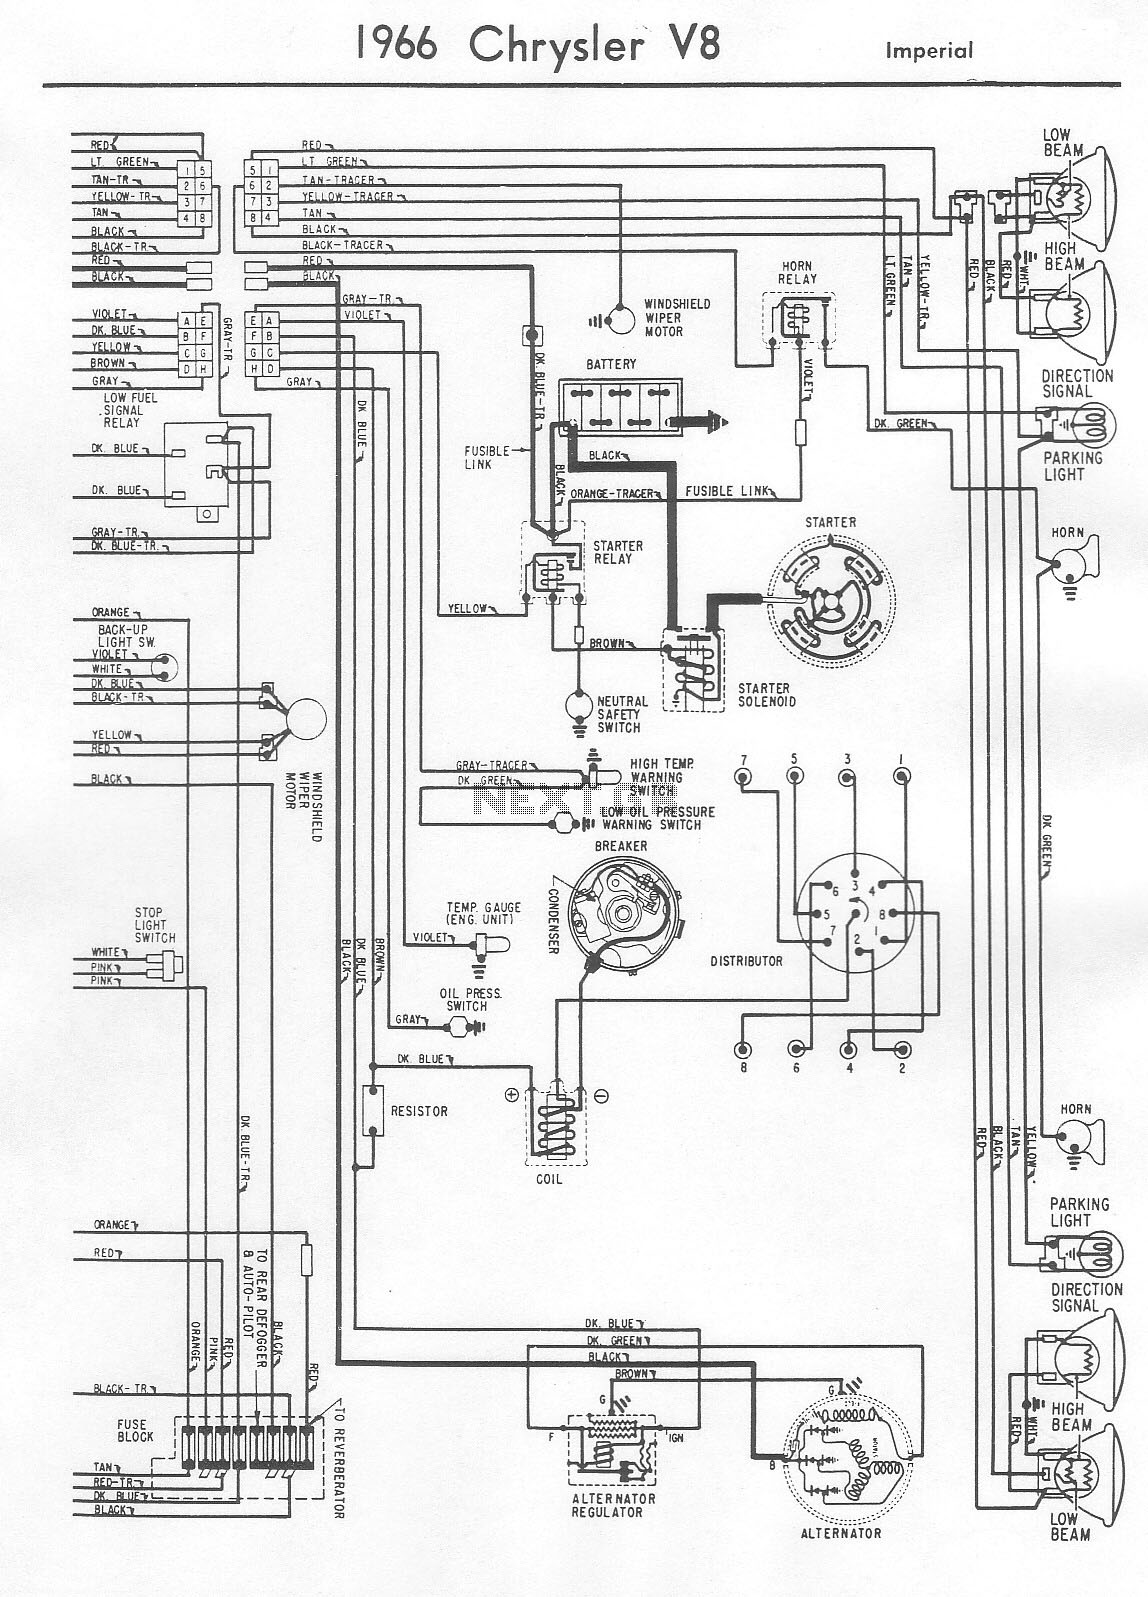 Imperial Wiring Schematic Archive Of Automotive Diagram Rear Defrost 1966 Chrysler Schematics Rh Thyl Co Uk